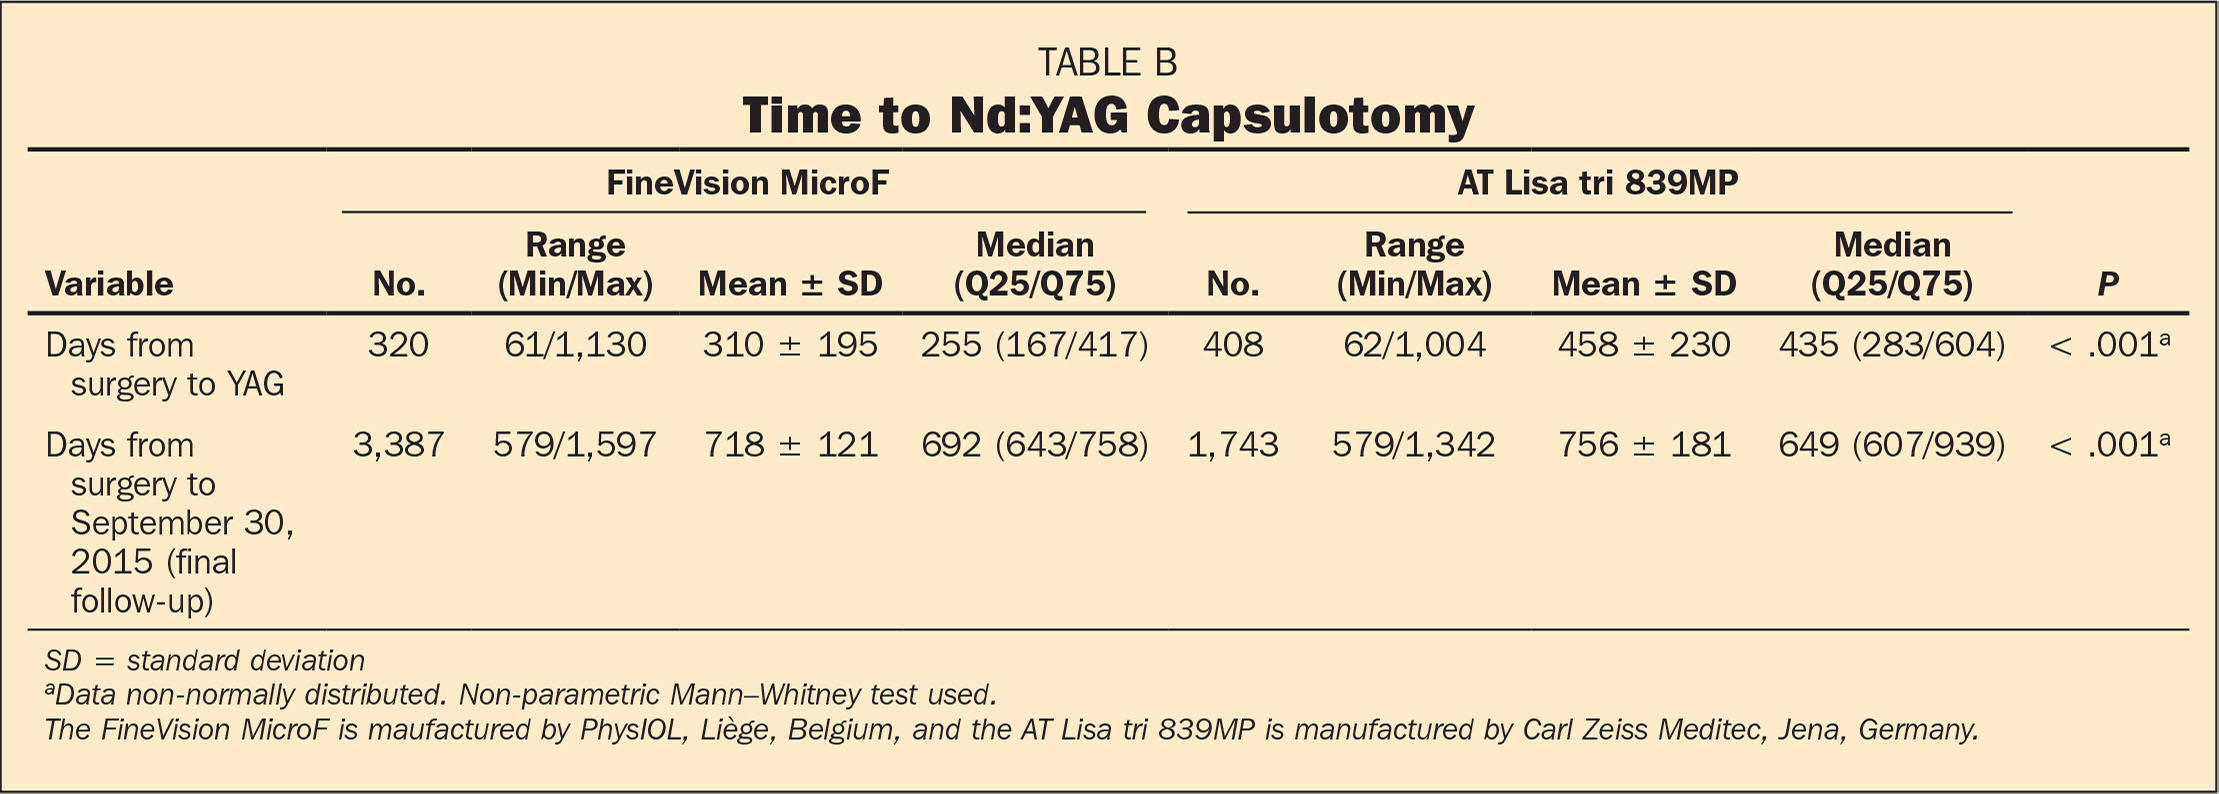 Time to Nd:YAG Capsulotomy